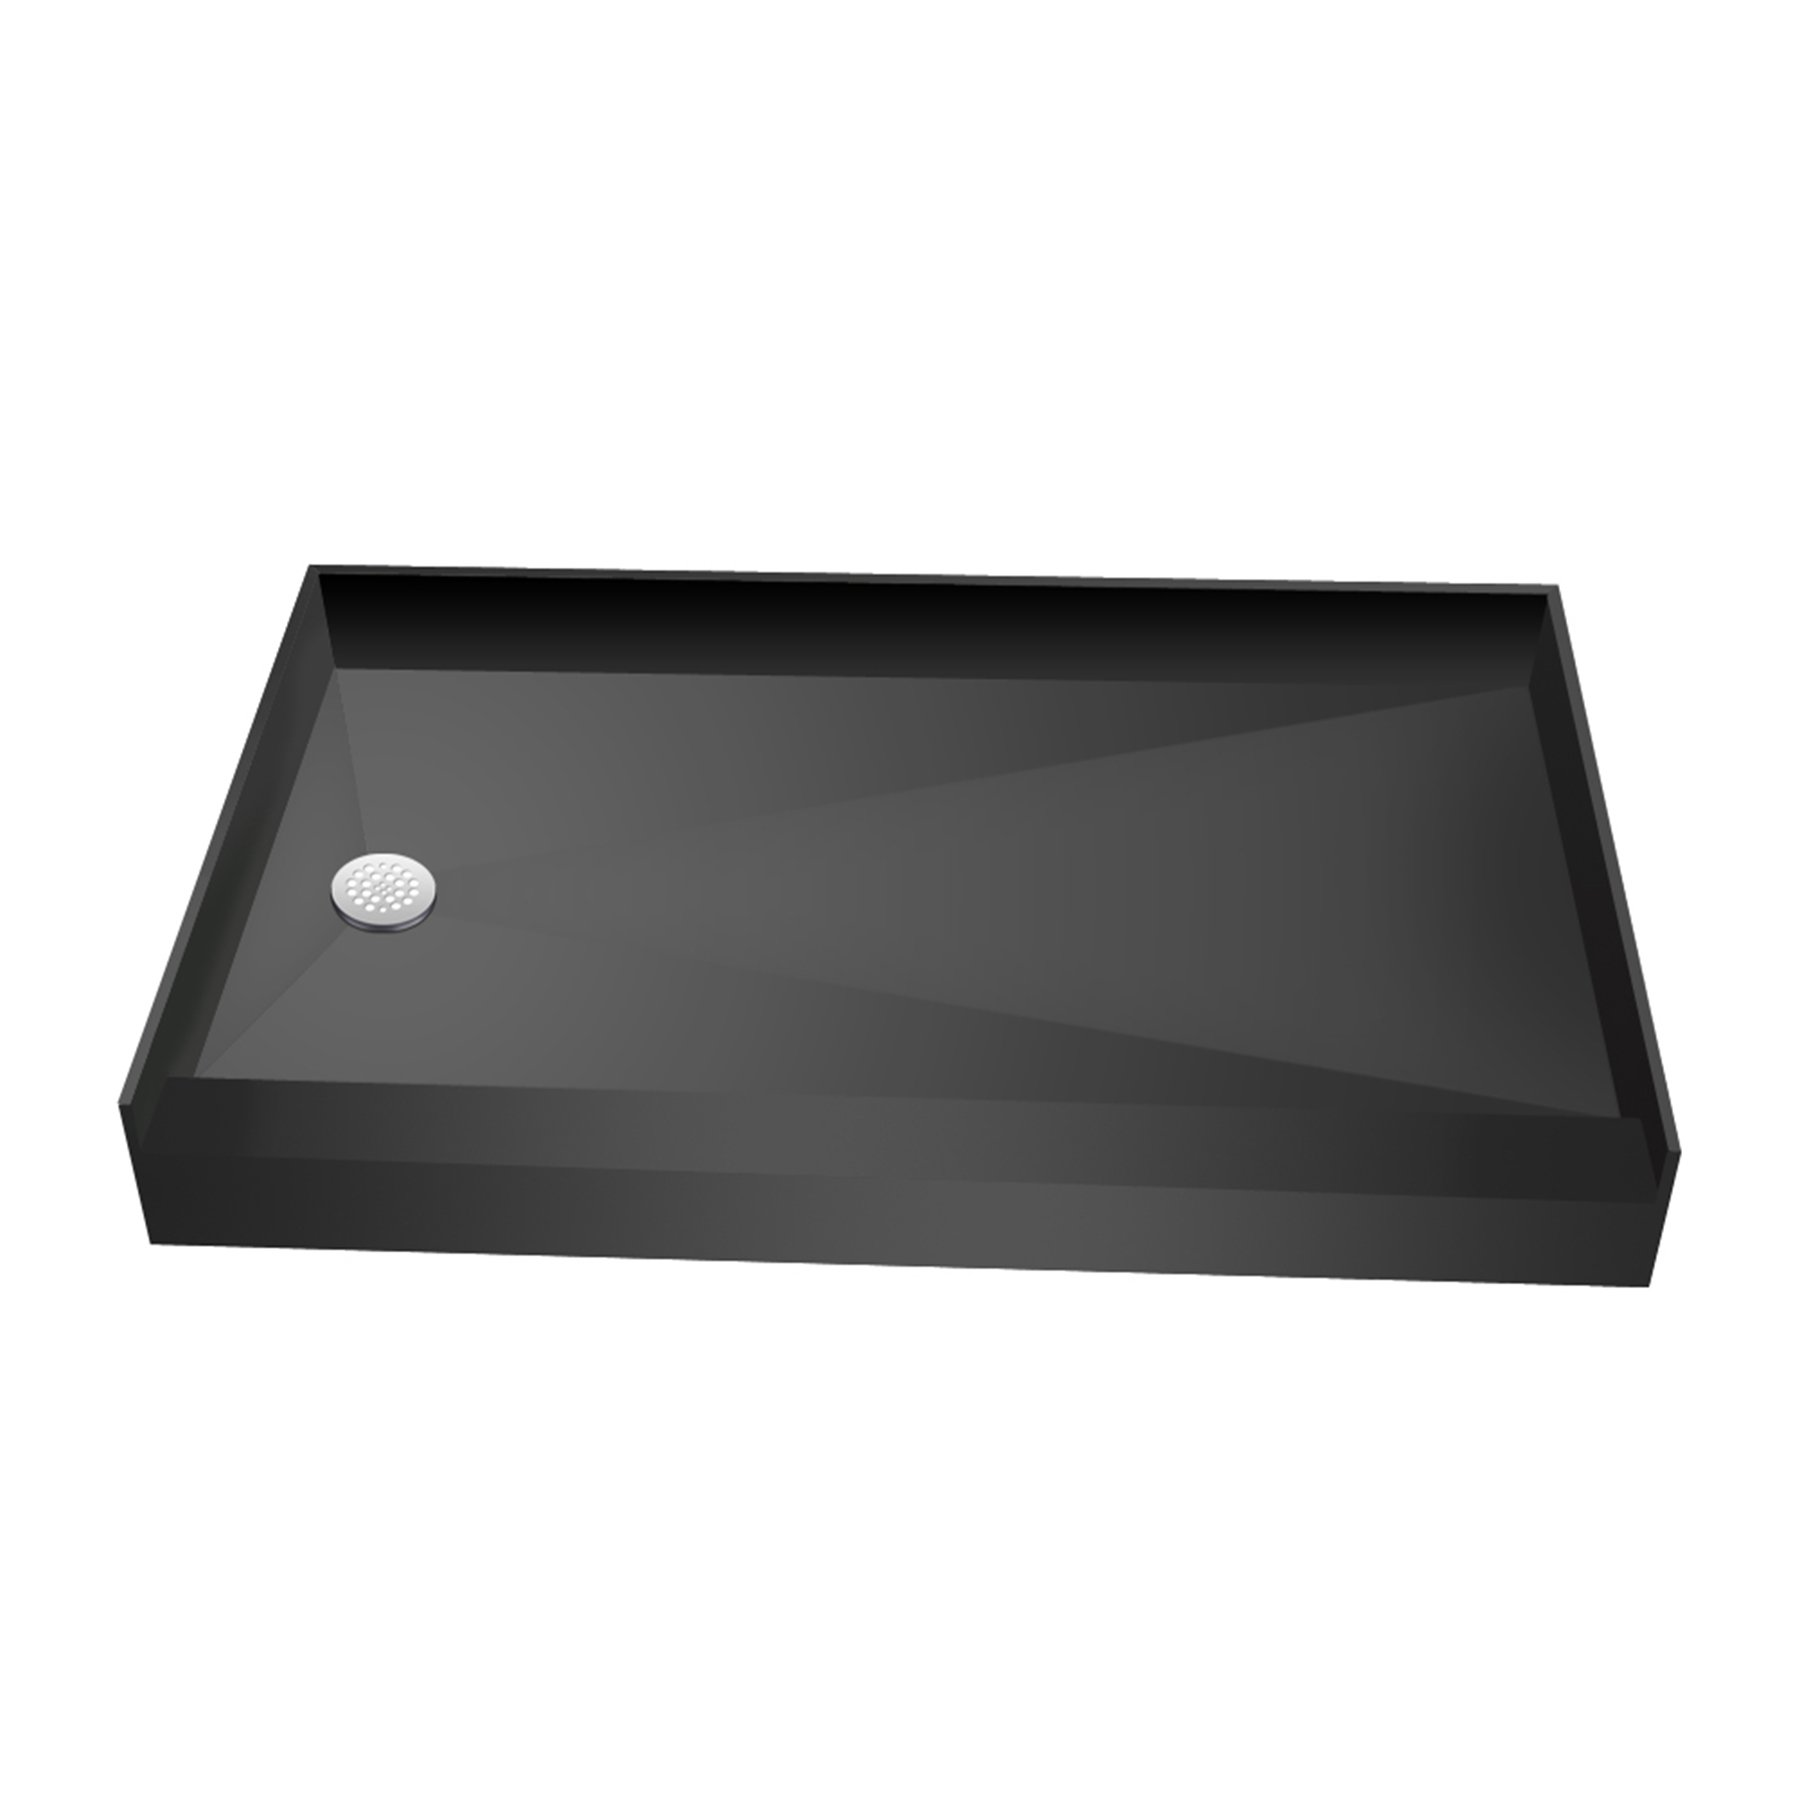 Tile Redi USA 3260LSPVC-15-2-4 Redi Base Bathtub Replacement Pan with Left Drain, 32'' D x 60'' W by Tile Redi USA